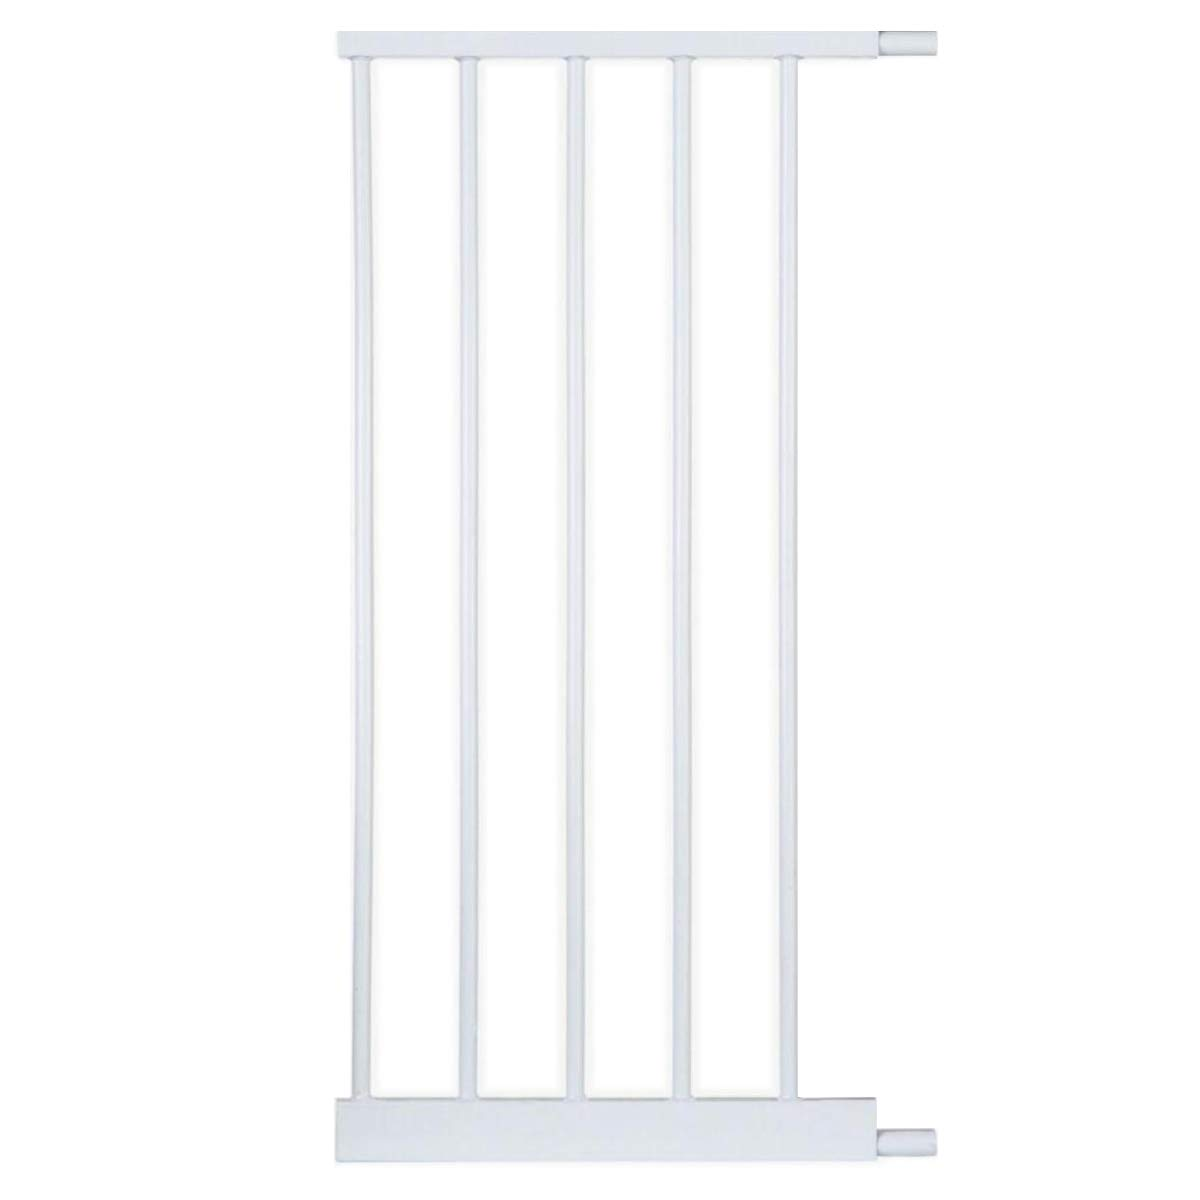 North States Supergate Auto Close Gate, 5 Bar Extension by North States Industries   B0009KF8DU